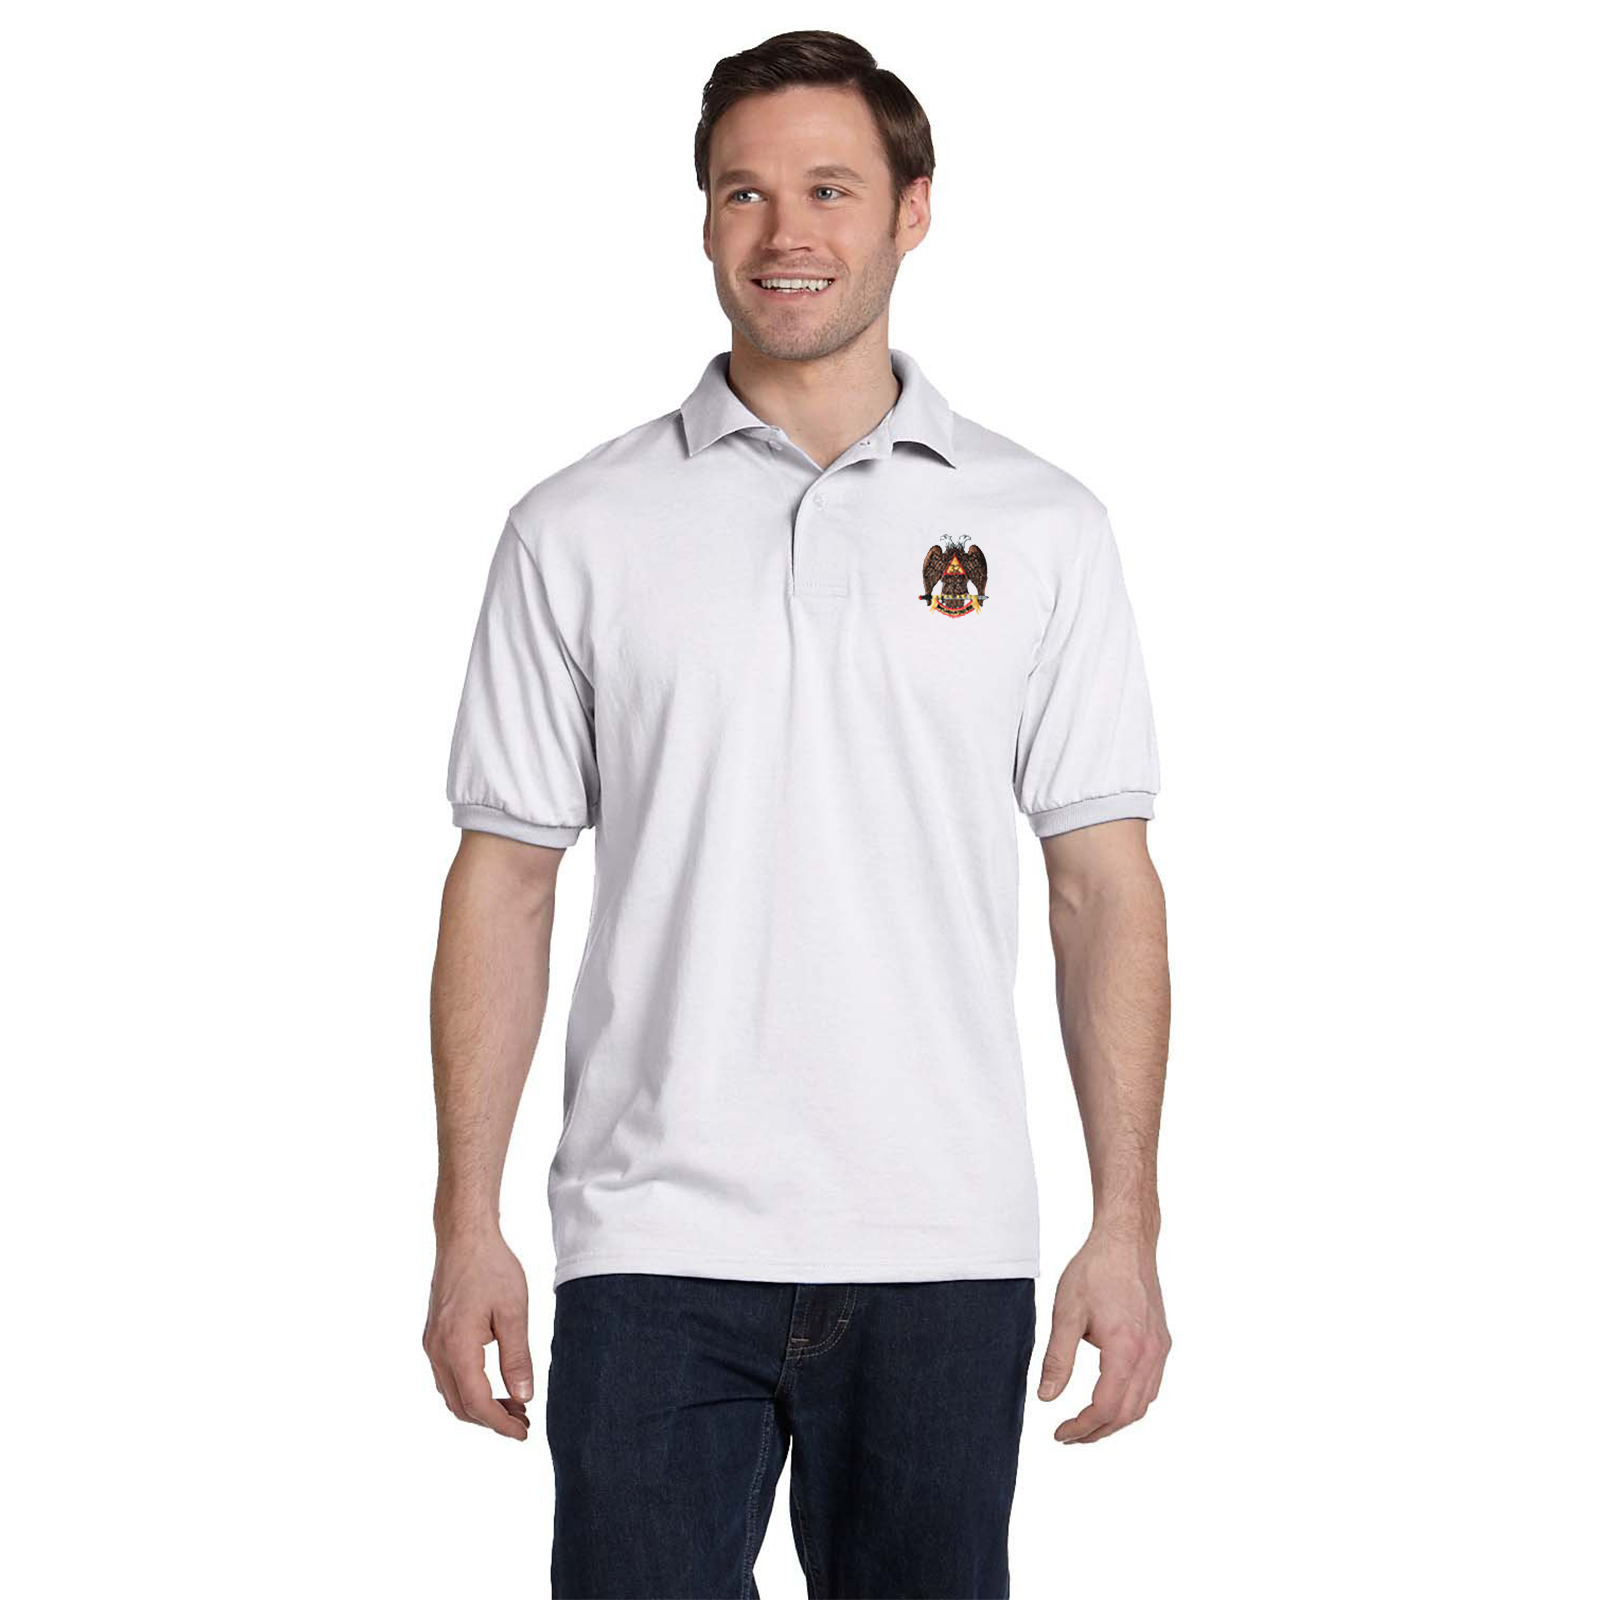 32nd Degree Embroidered Masonic Men's Polo Shirt